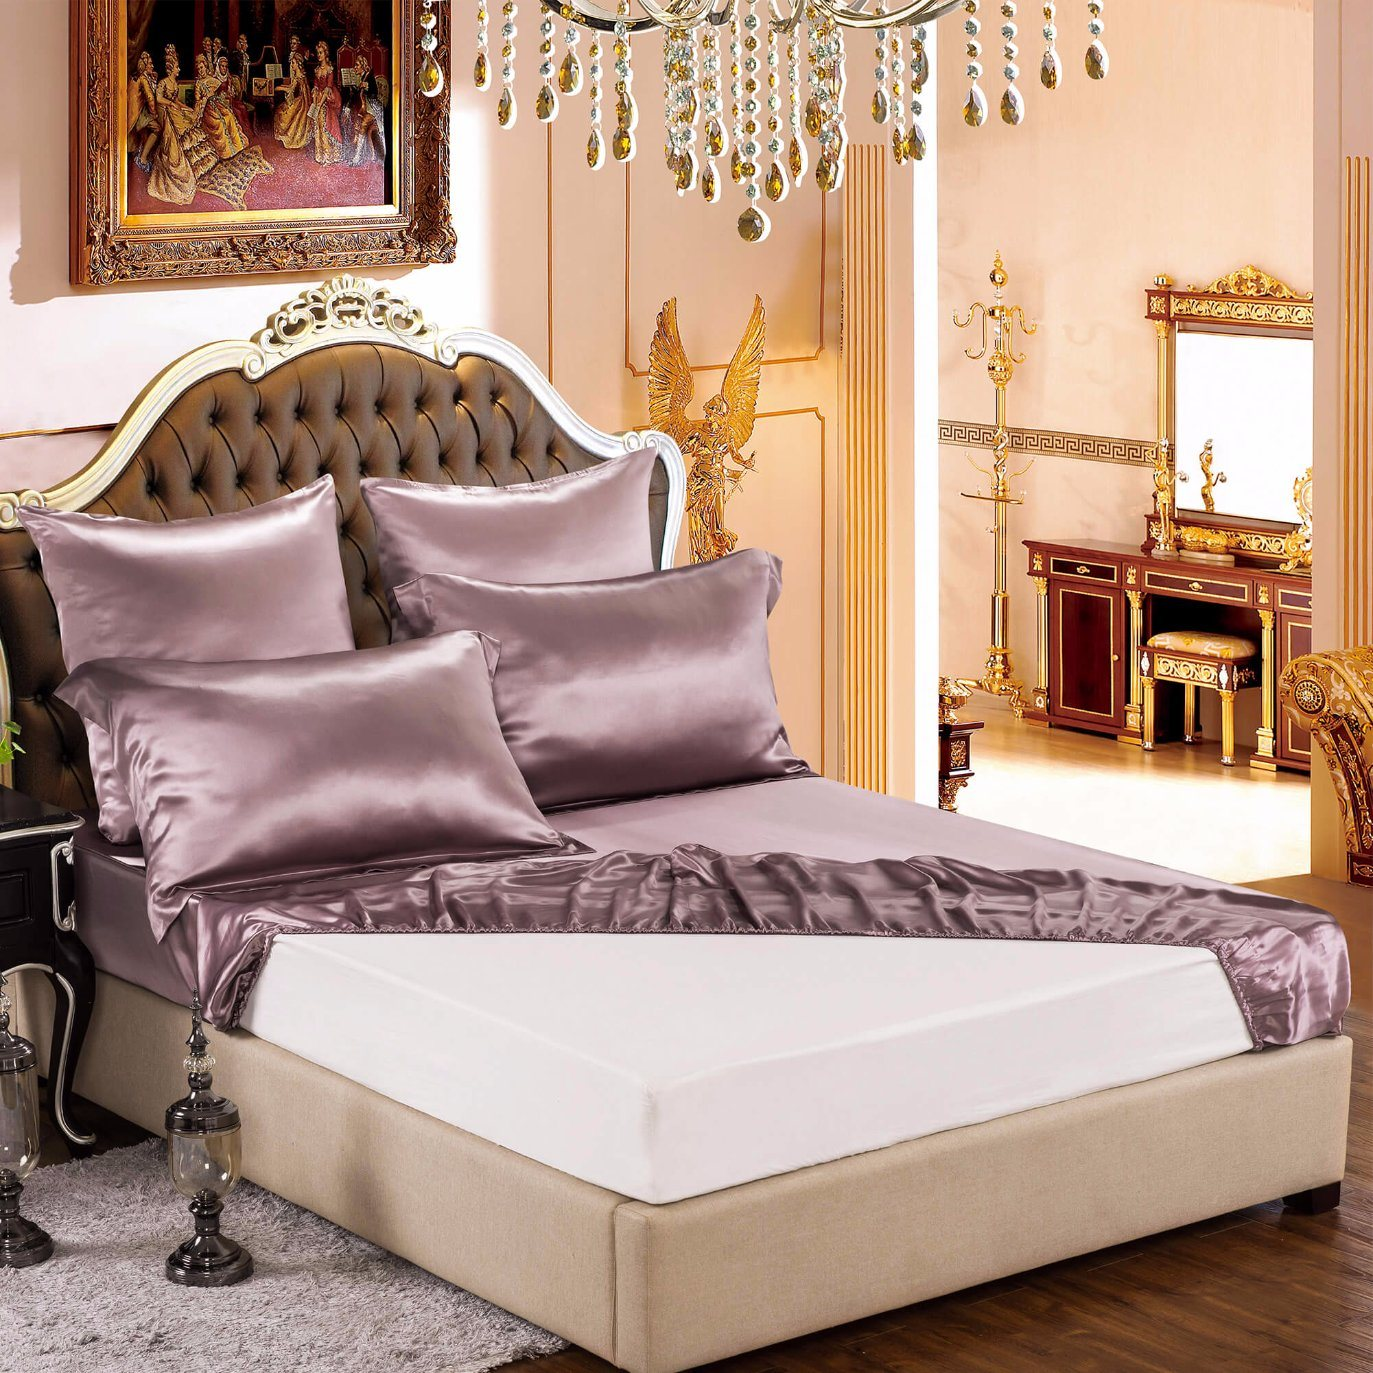 handmade brand momme bedding luxuer products brown silk bed cover sheet set duvet collections pieces chocolate